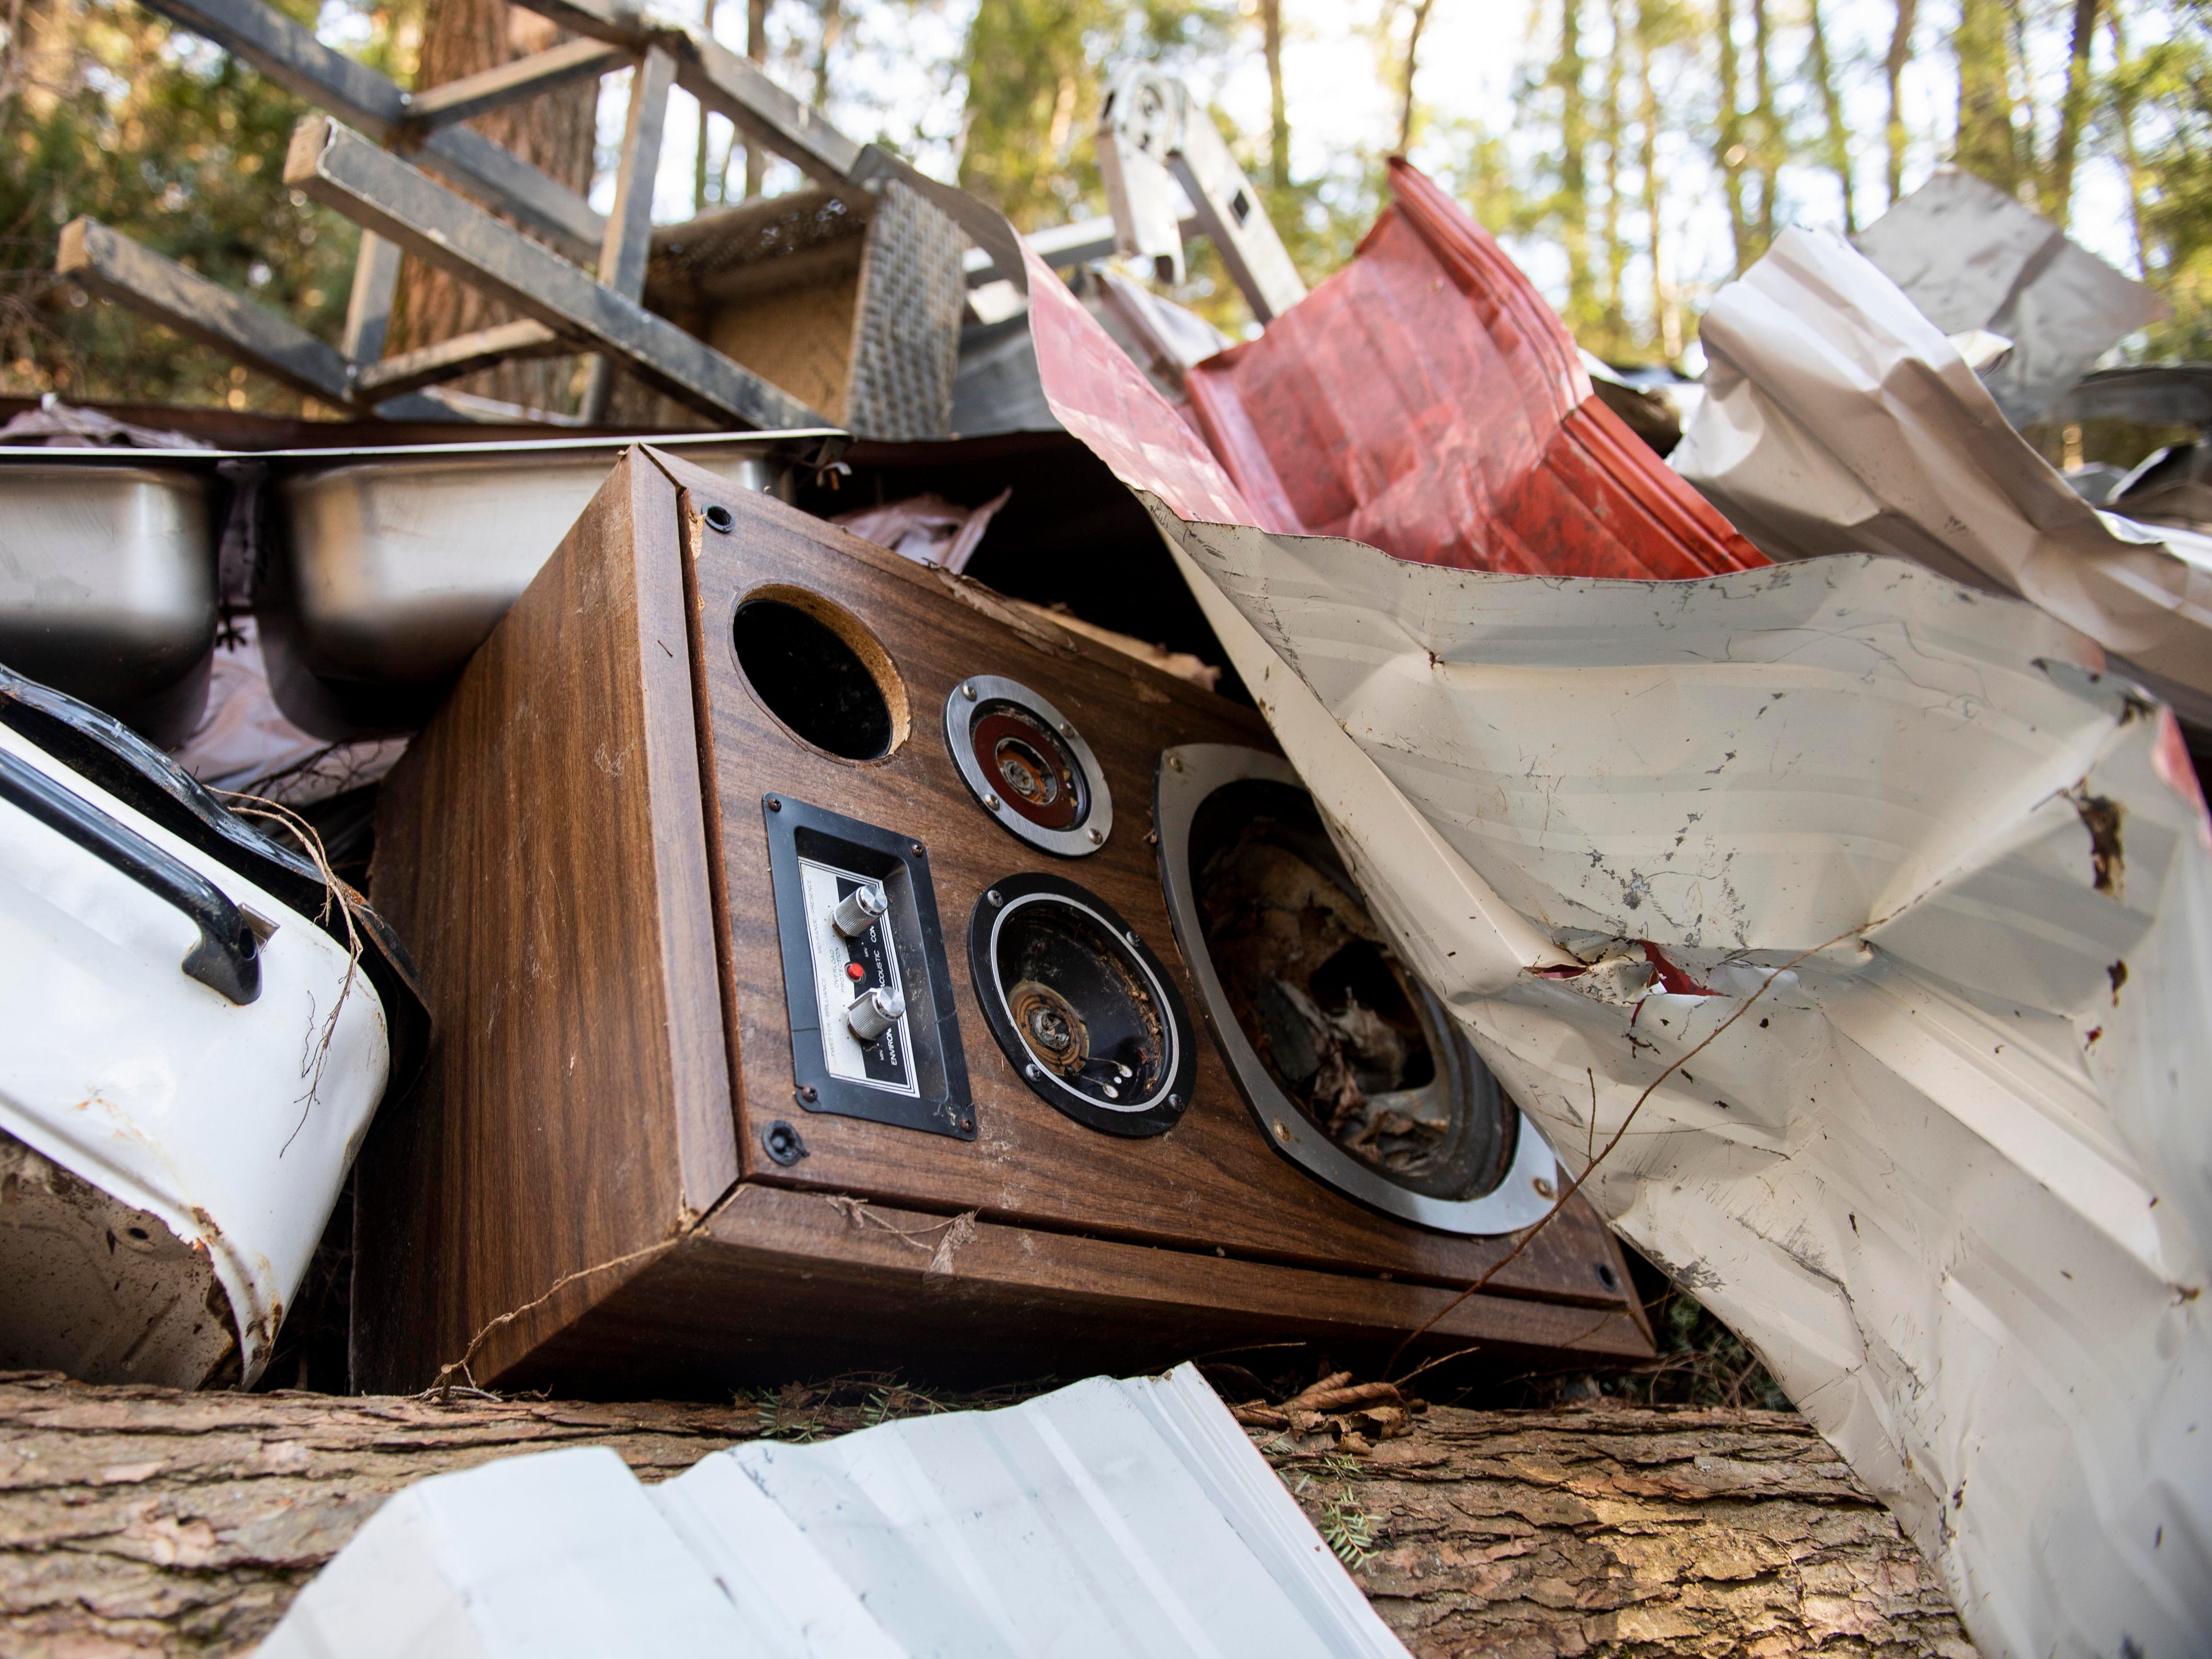 A stereo, among plenty of other miscellaneous metal, are seen in a pile along the banks of Otter Creek, Thursday, Jan. 10, 2019. Flooding that ravaged many parts of York County in Aug. 2018 swept debris into Otter Creek, in Airville.